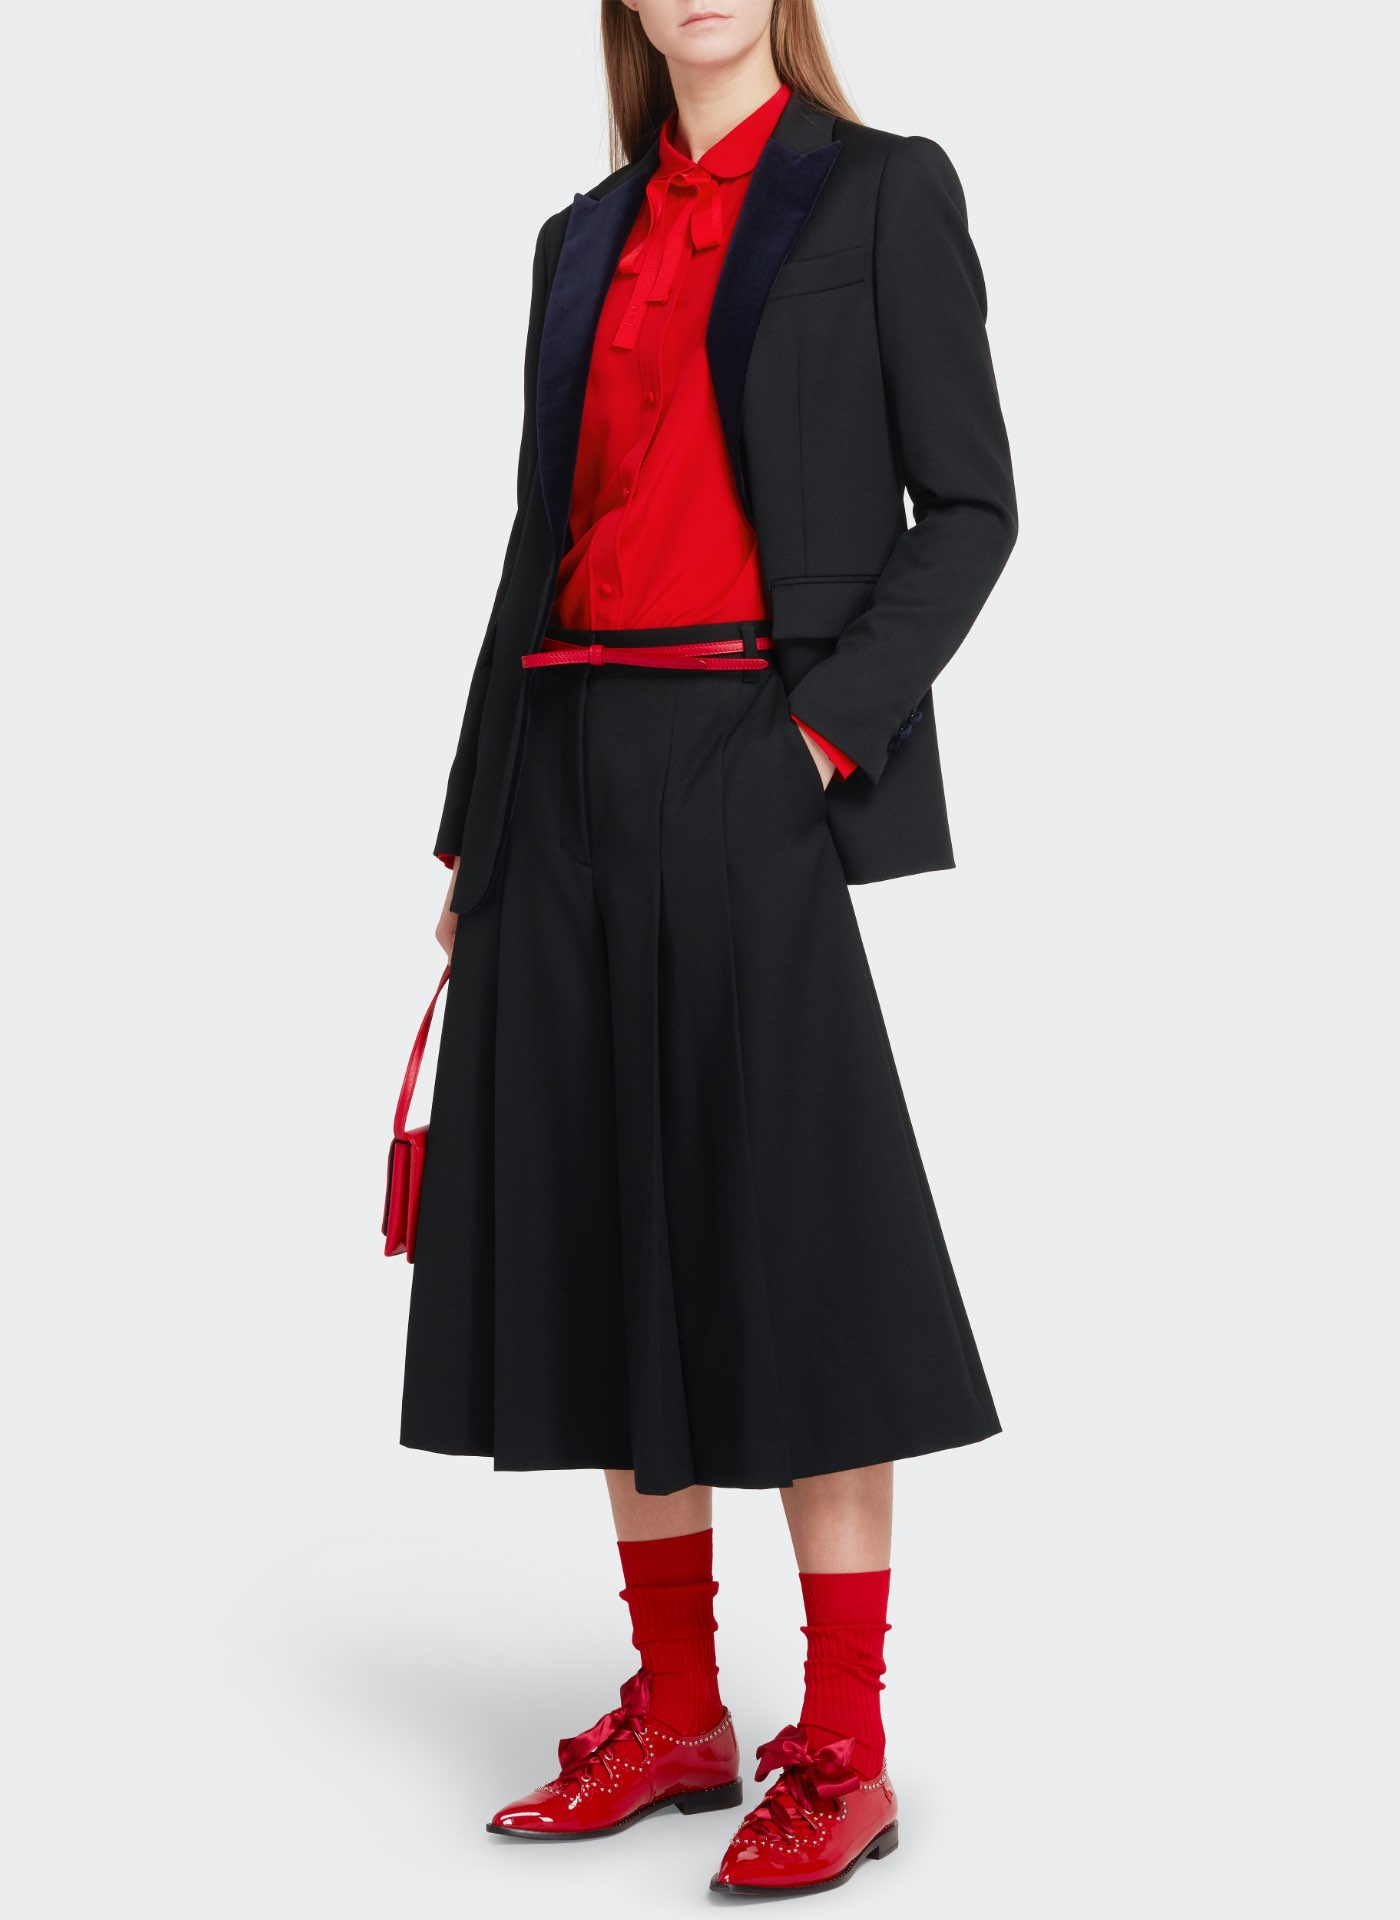 Womenswear model wearing black J&M skirt with a black jacket holding a red leather bag, red shoes and red belt, red socks